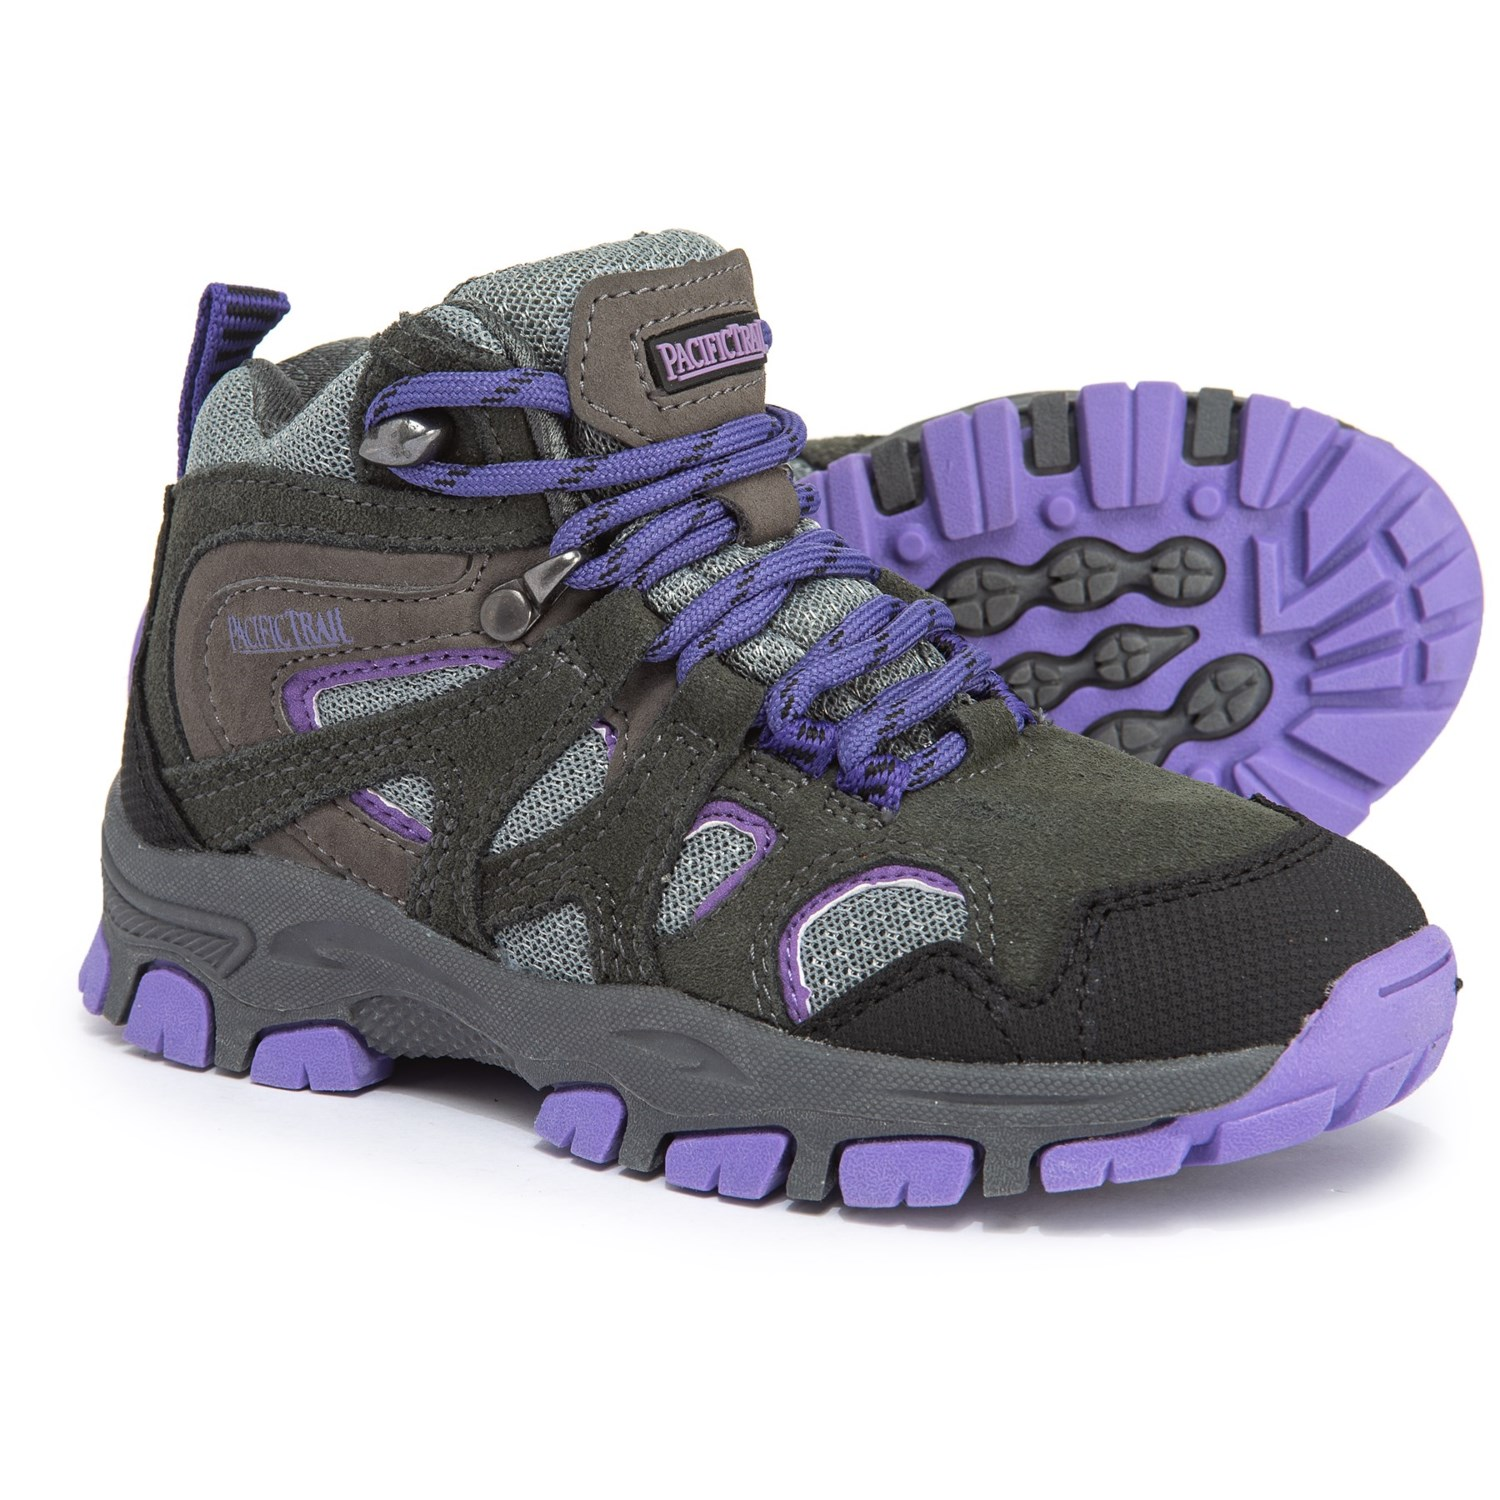 873c53be7e4 Pacific Trail Diller Jr. Mid Hiking Boots - Suede (For Girls)